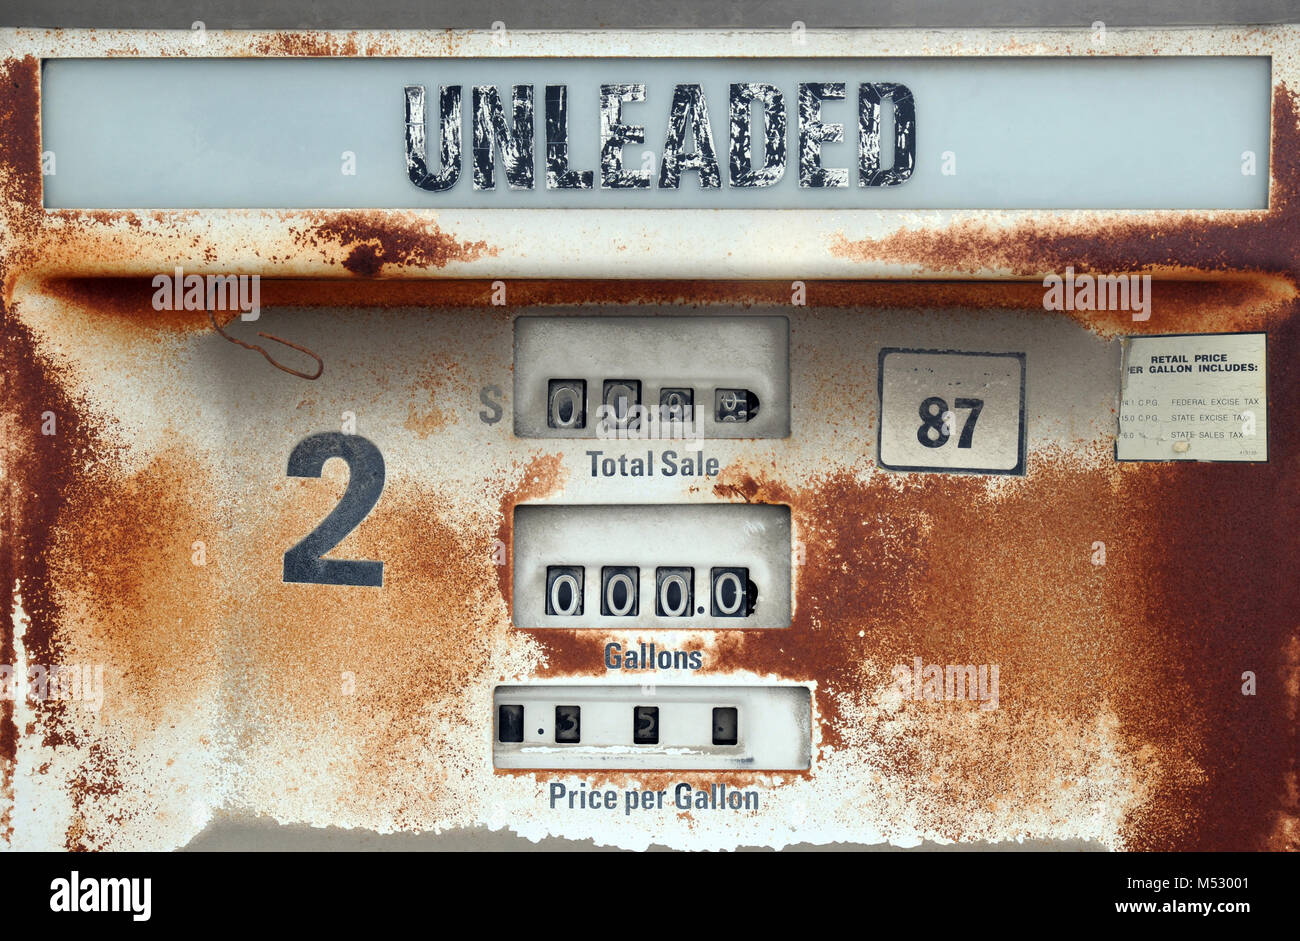 A rusty gas pump along old Route 66 in the southwestern United States. - Stock Image